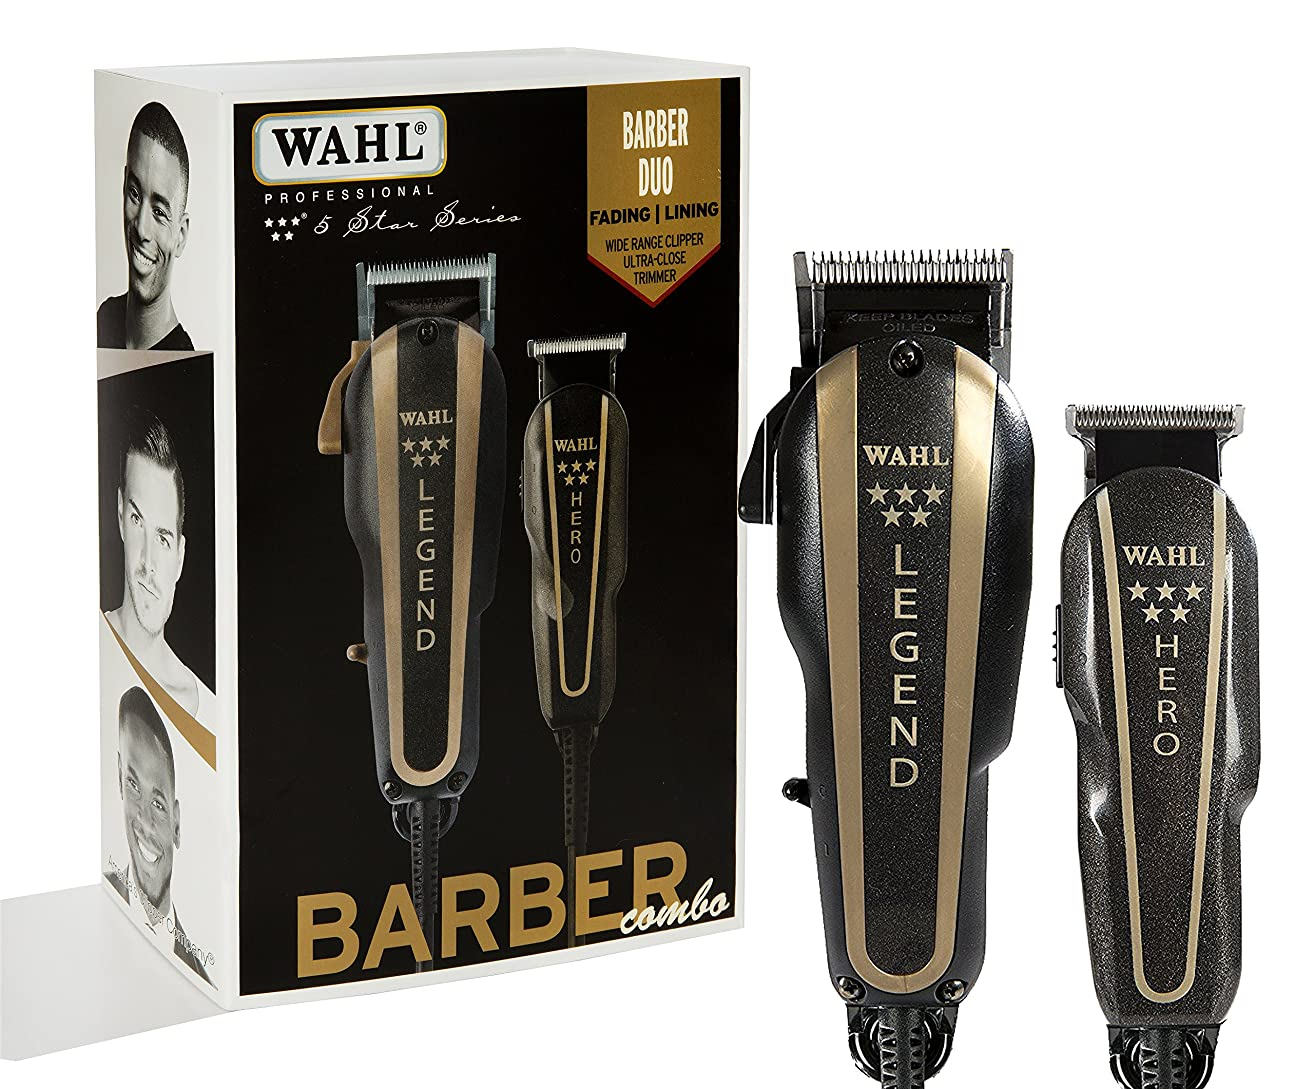 欲求不満ランプ目の前のWAHL Professional 5 Star Series Barber Combo No. 8180